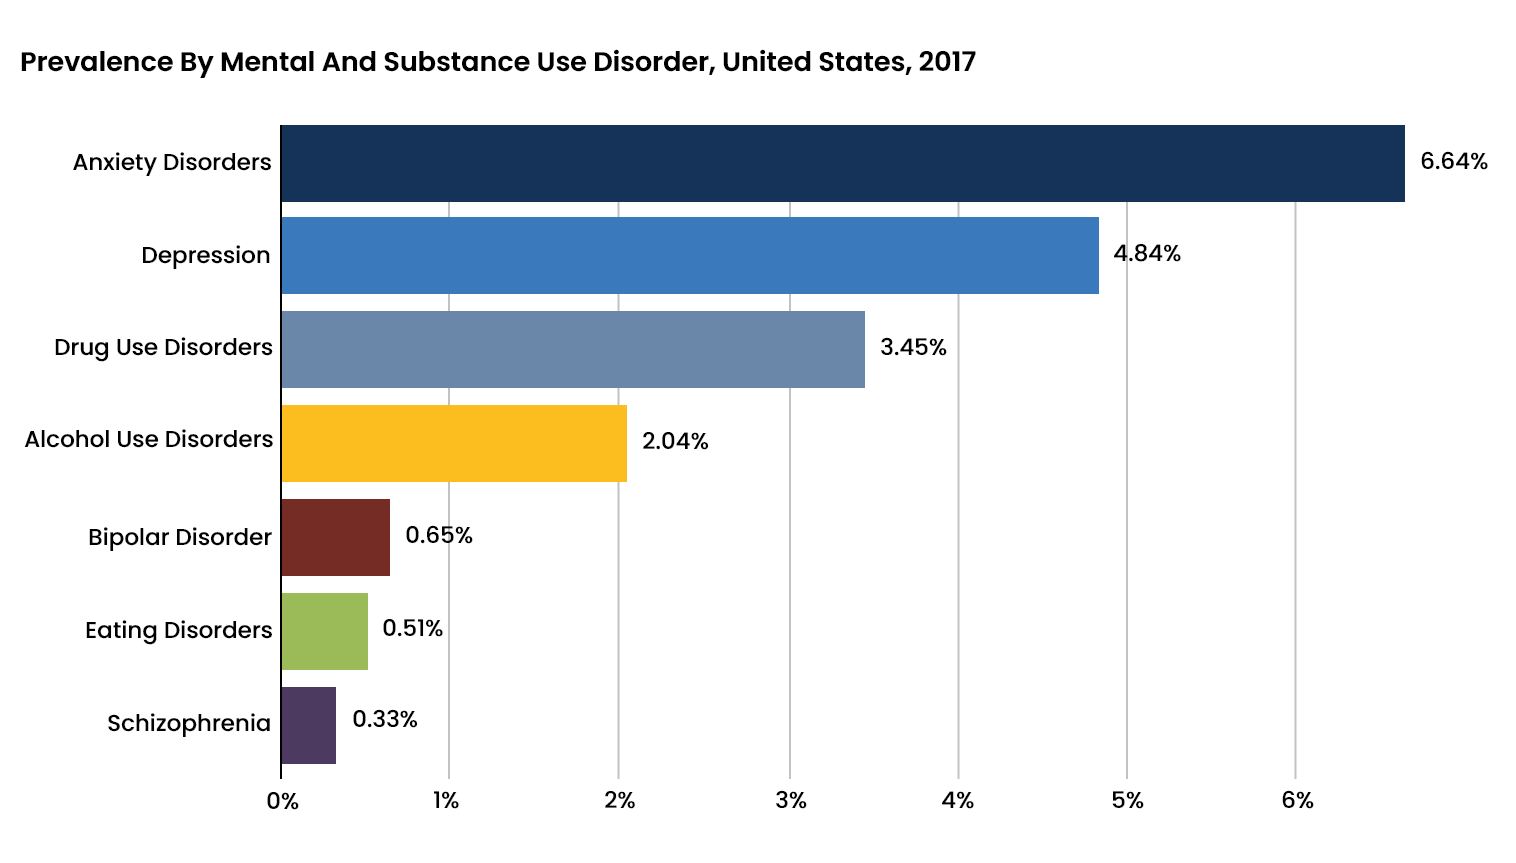 Prevalence of Substance Use Disorder and Mental Health Disorder - 1 - Recovery Partner Network